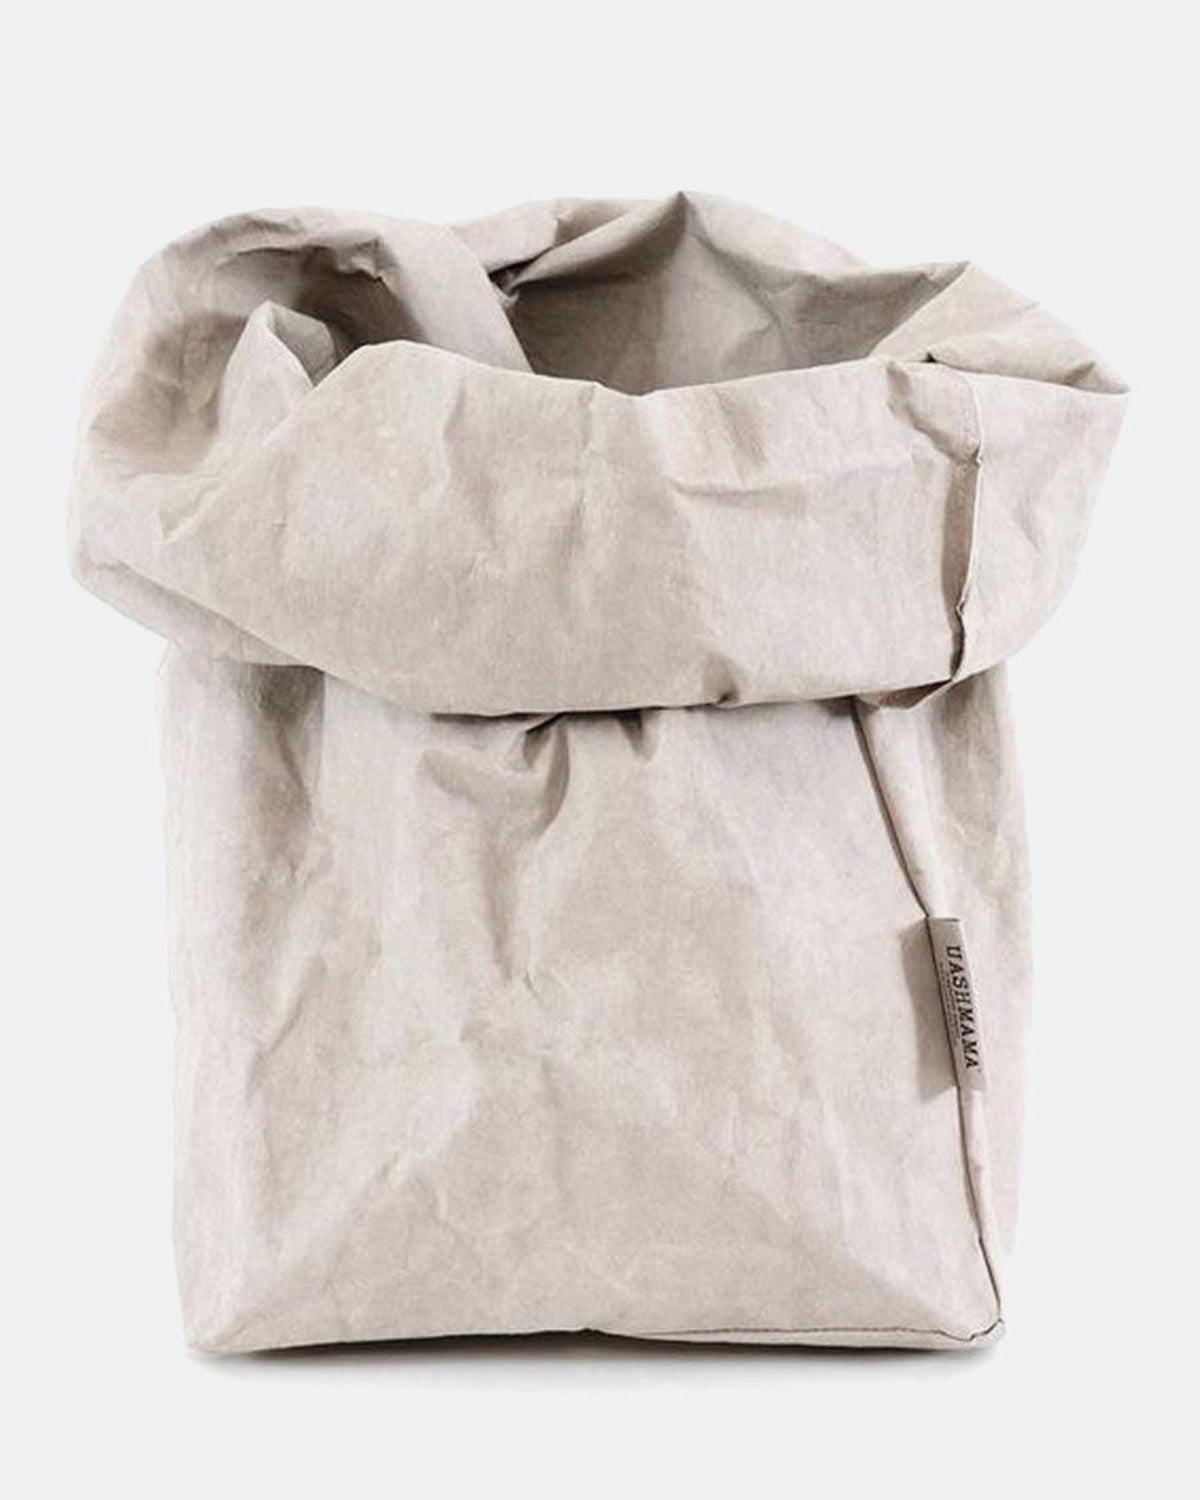 Uashmama Washable Paper Bag - Large